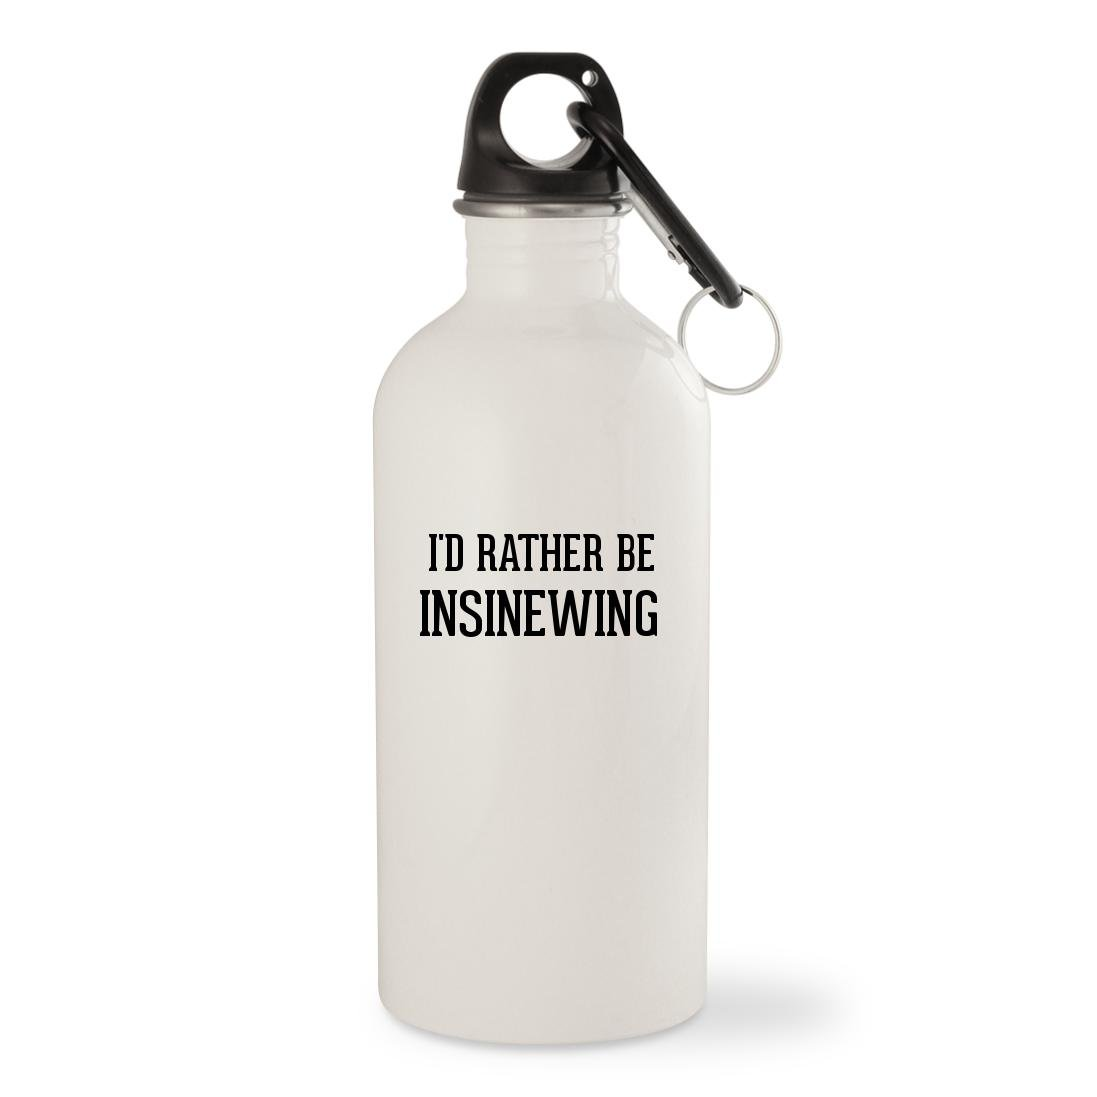 I'd Rather Be INSINEWING - White 20oz Stainless Steel Water Bottle with Carabiner